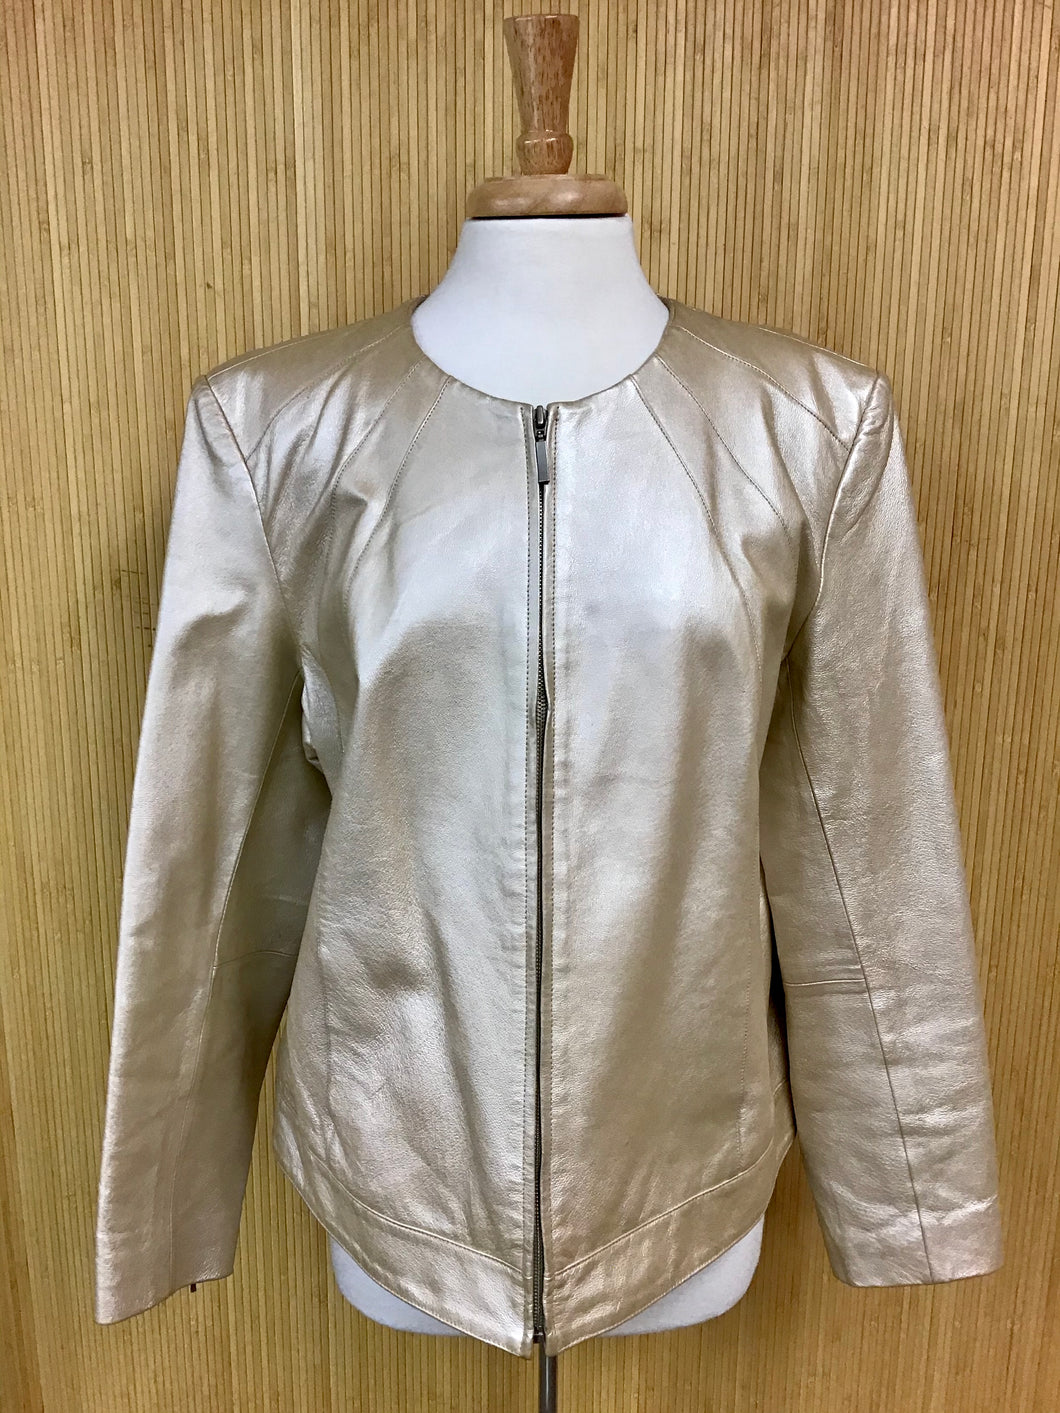 Dialogue Gold Leather Jacket (XL)